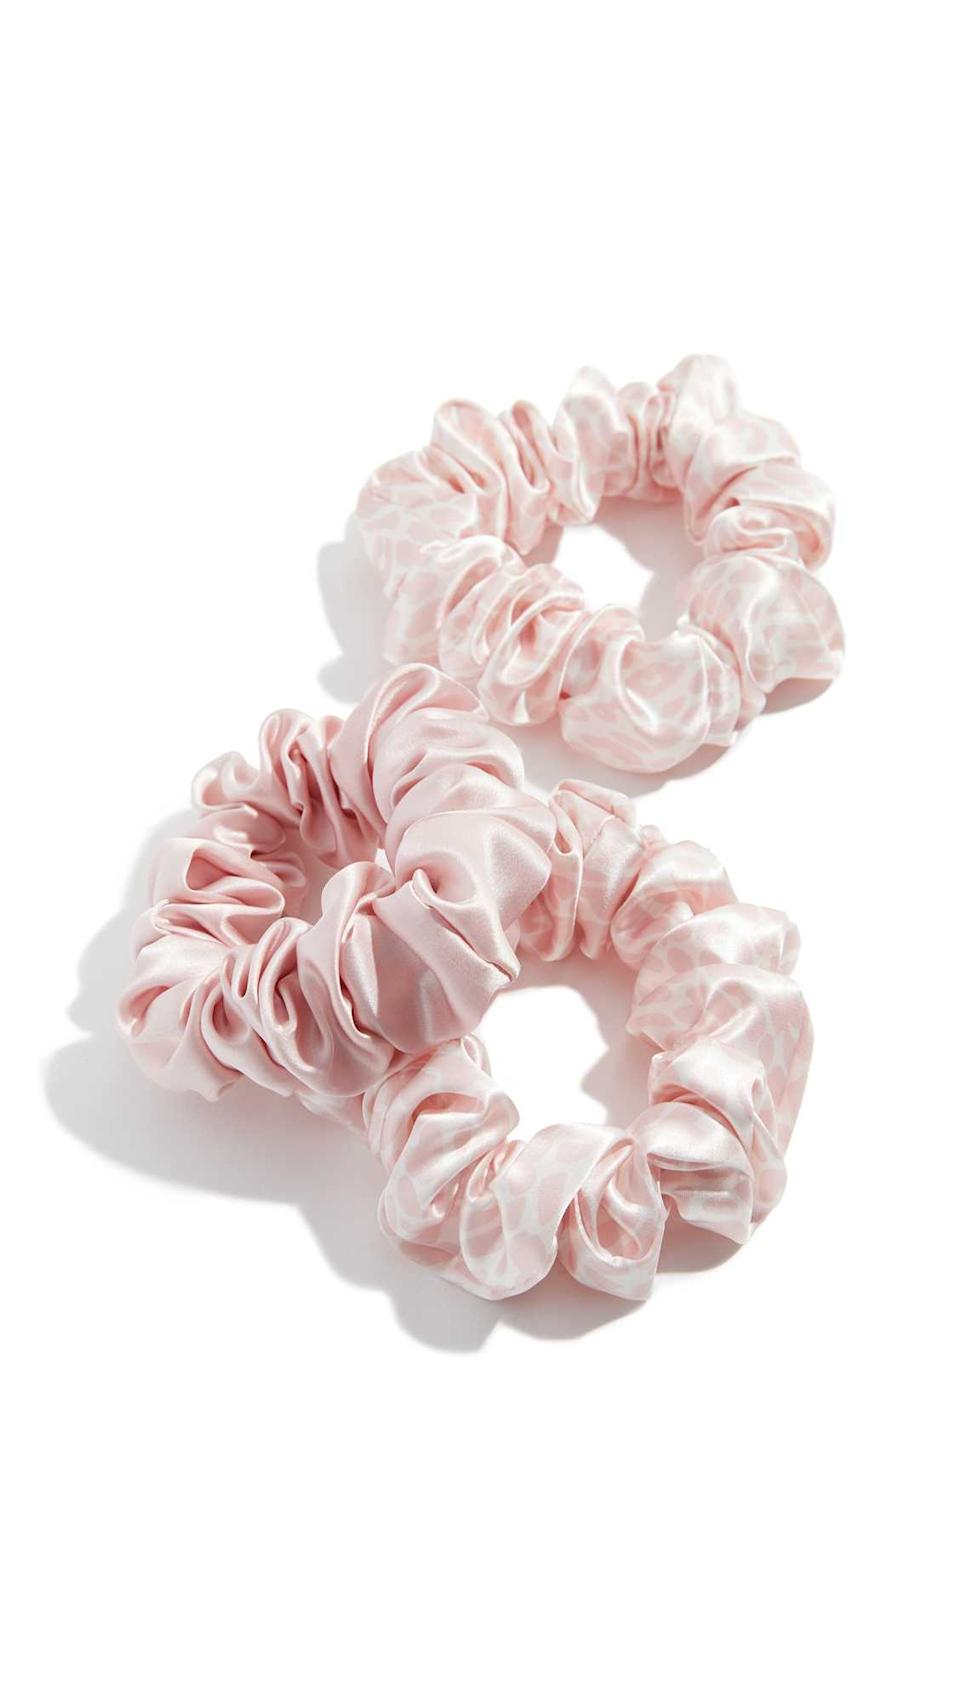 """<h3>Slip Silk Scrunchies</h3><br>If you're looking for pink silk — specifically the kind featured in the shot above — check out this set by Slip.<br><br><strong>Slip</strong> Classic Large Scrunchie Set of 3, $, available at <a href=""""https://go.skimresources.com/?id=30283X879131&url=https%3A%2F%2Fwww.shopbop.com%2Fclassic-large-scrunchie-set-slip%2Fvp%2Fv%3D1%2F1580971710.htm%3Ffm%3Dsearch-viewall%26os%3Dfalse"""" rel=""""nofollow noopener"""" target=""""_blank"""" data-ylk=""""slk:Shopbop"""" class=""""link rapid-noclick-resp"""">Shopbop</a>"""